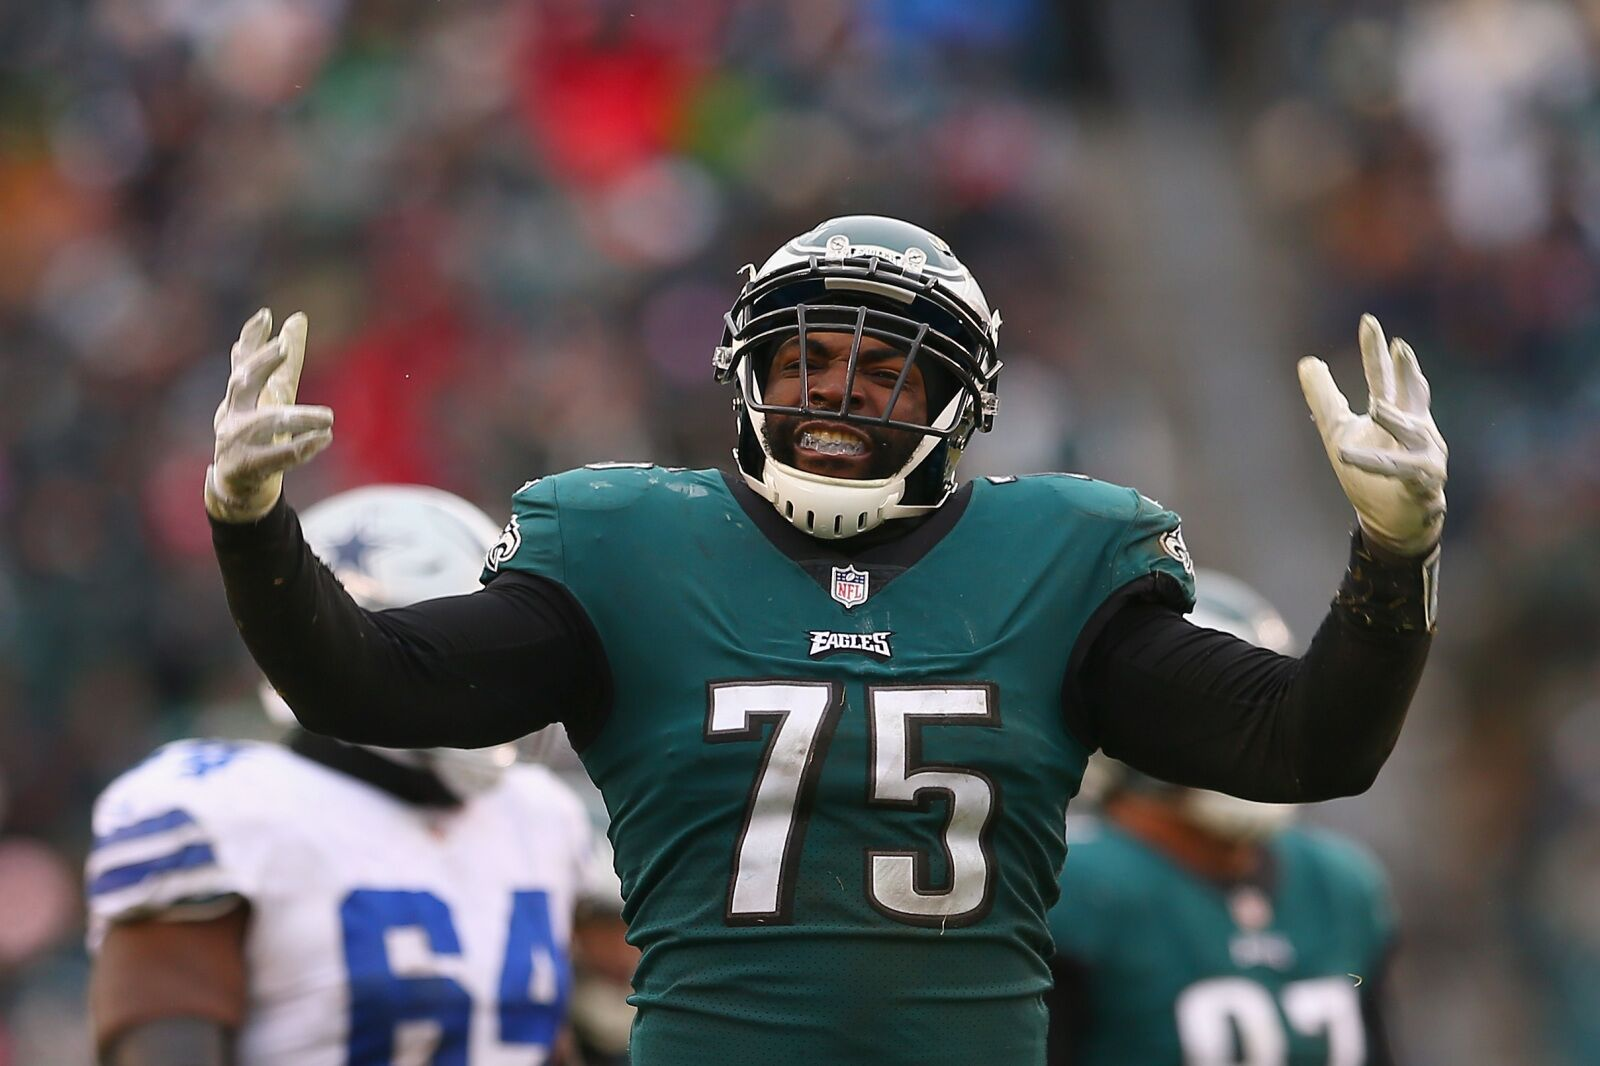 570253b6 Philadelphia Eagles: Vinny Curry has an offer waiting for him in Philly